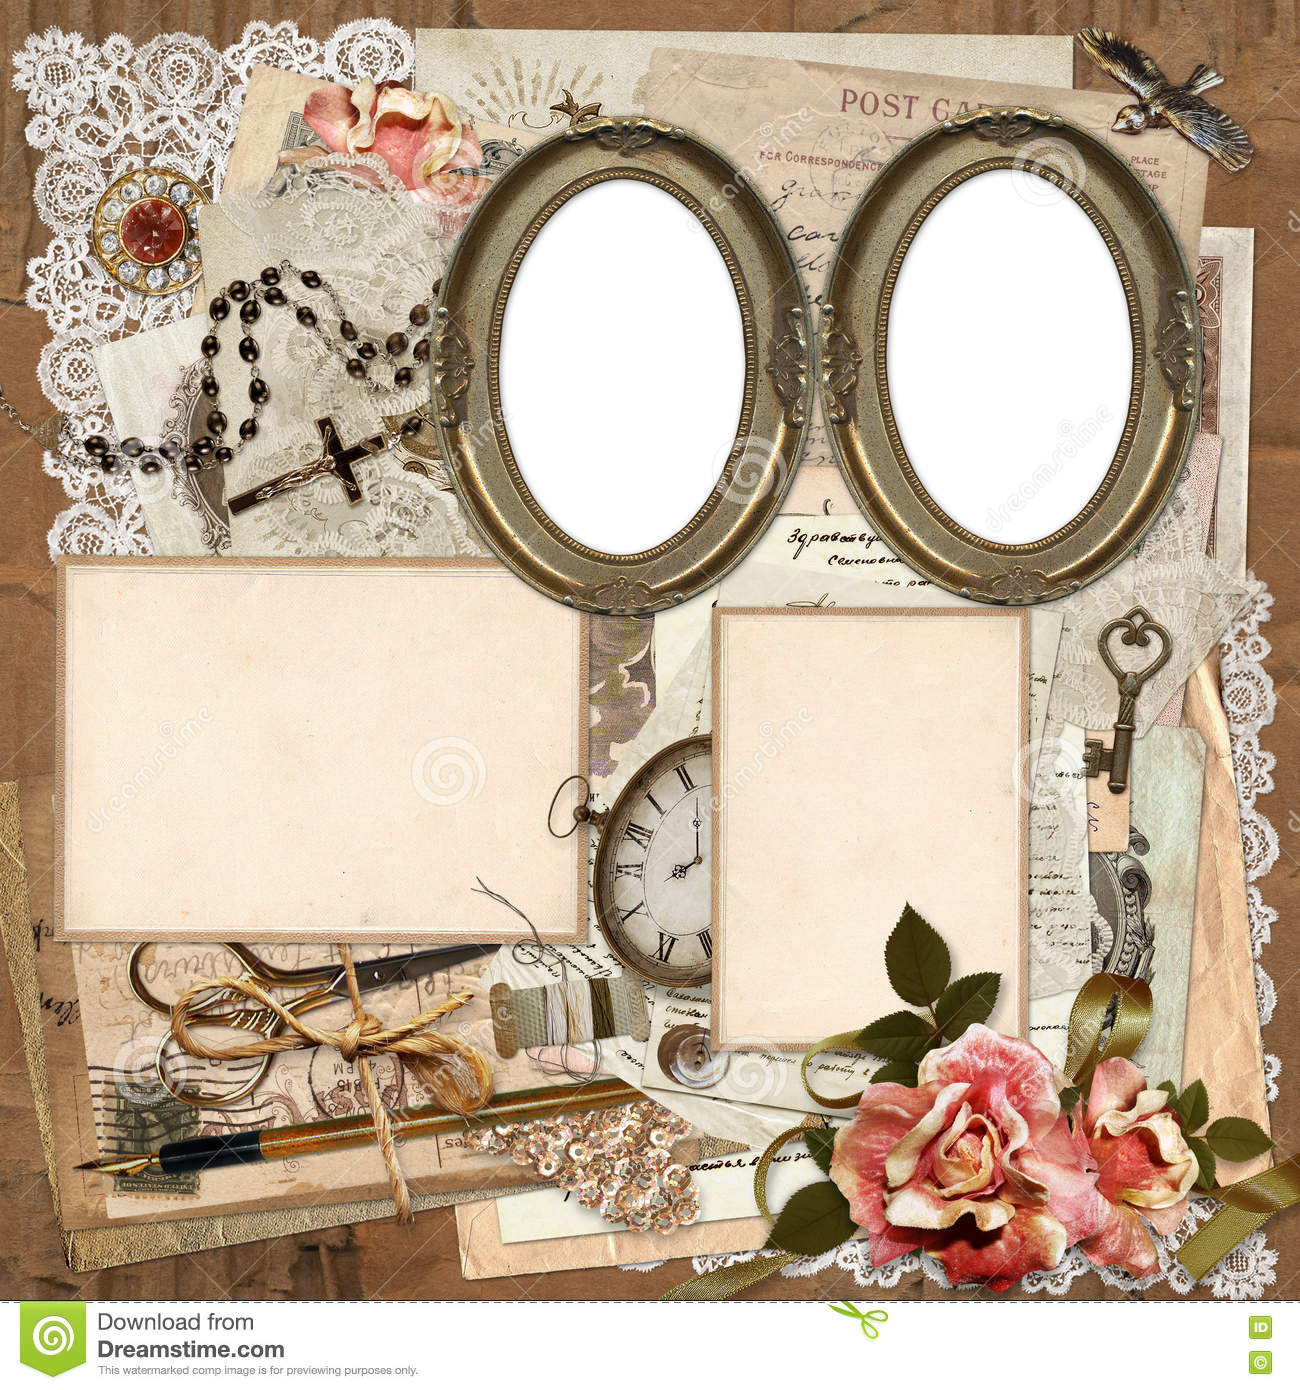 frames old documents money vintage decorations on a worn cardboard background